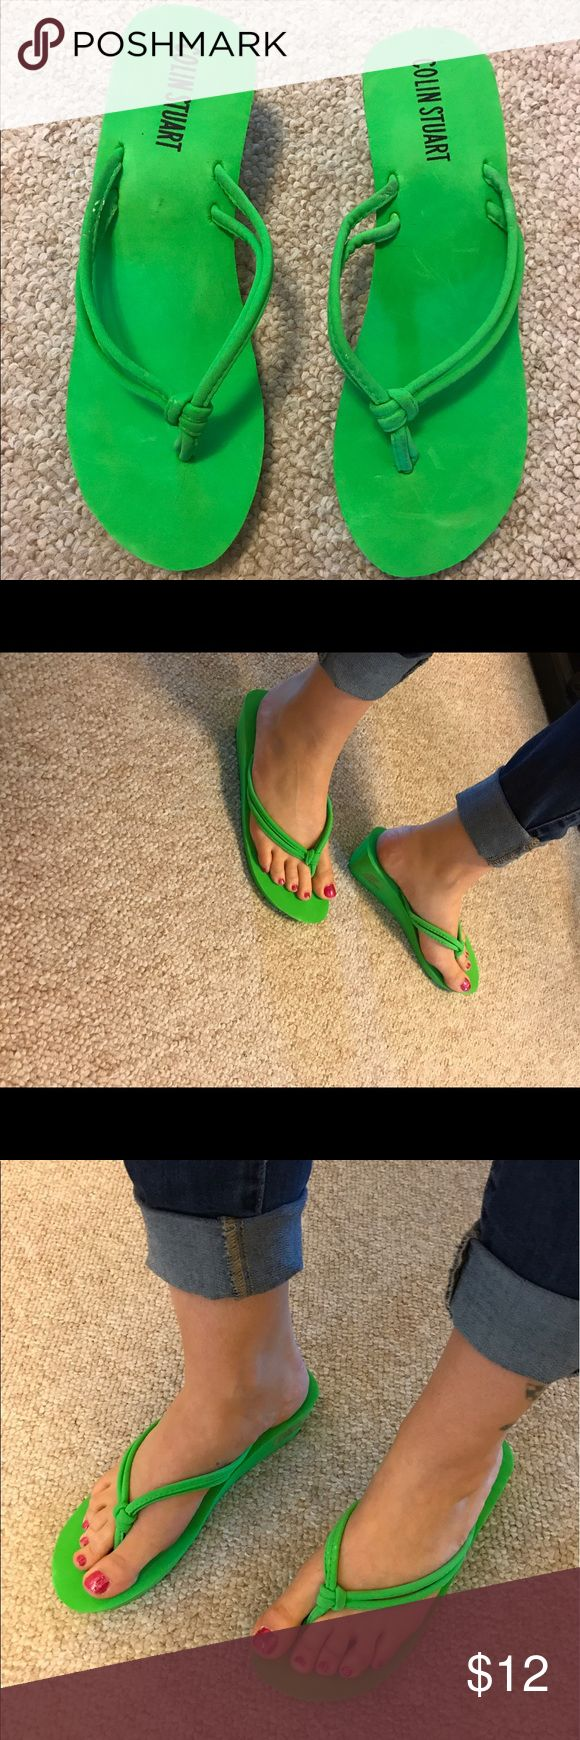 COLIN STUART Neon Green Wedge Flip Flops Size7.5 COLIN STUART Neon Green Wedge Flip Flops Size7.5   Great Color!! Very comfy & cute...Never Worn, still has tag stickers!! Small pin dot discoloration on strap. Thanks for looking!' Colin Stuart Shoes Sandals